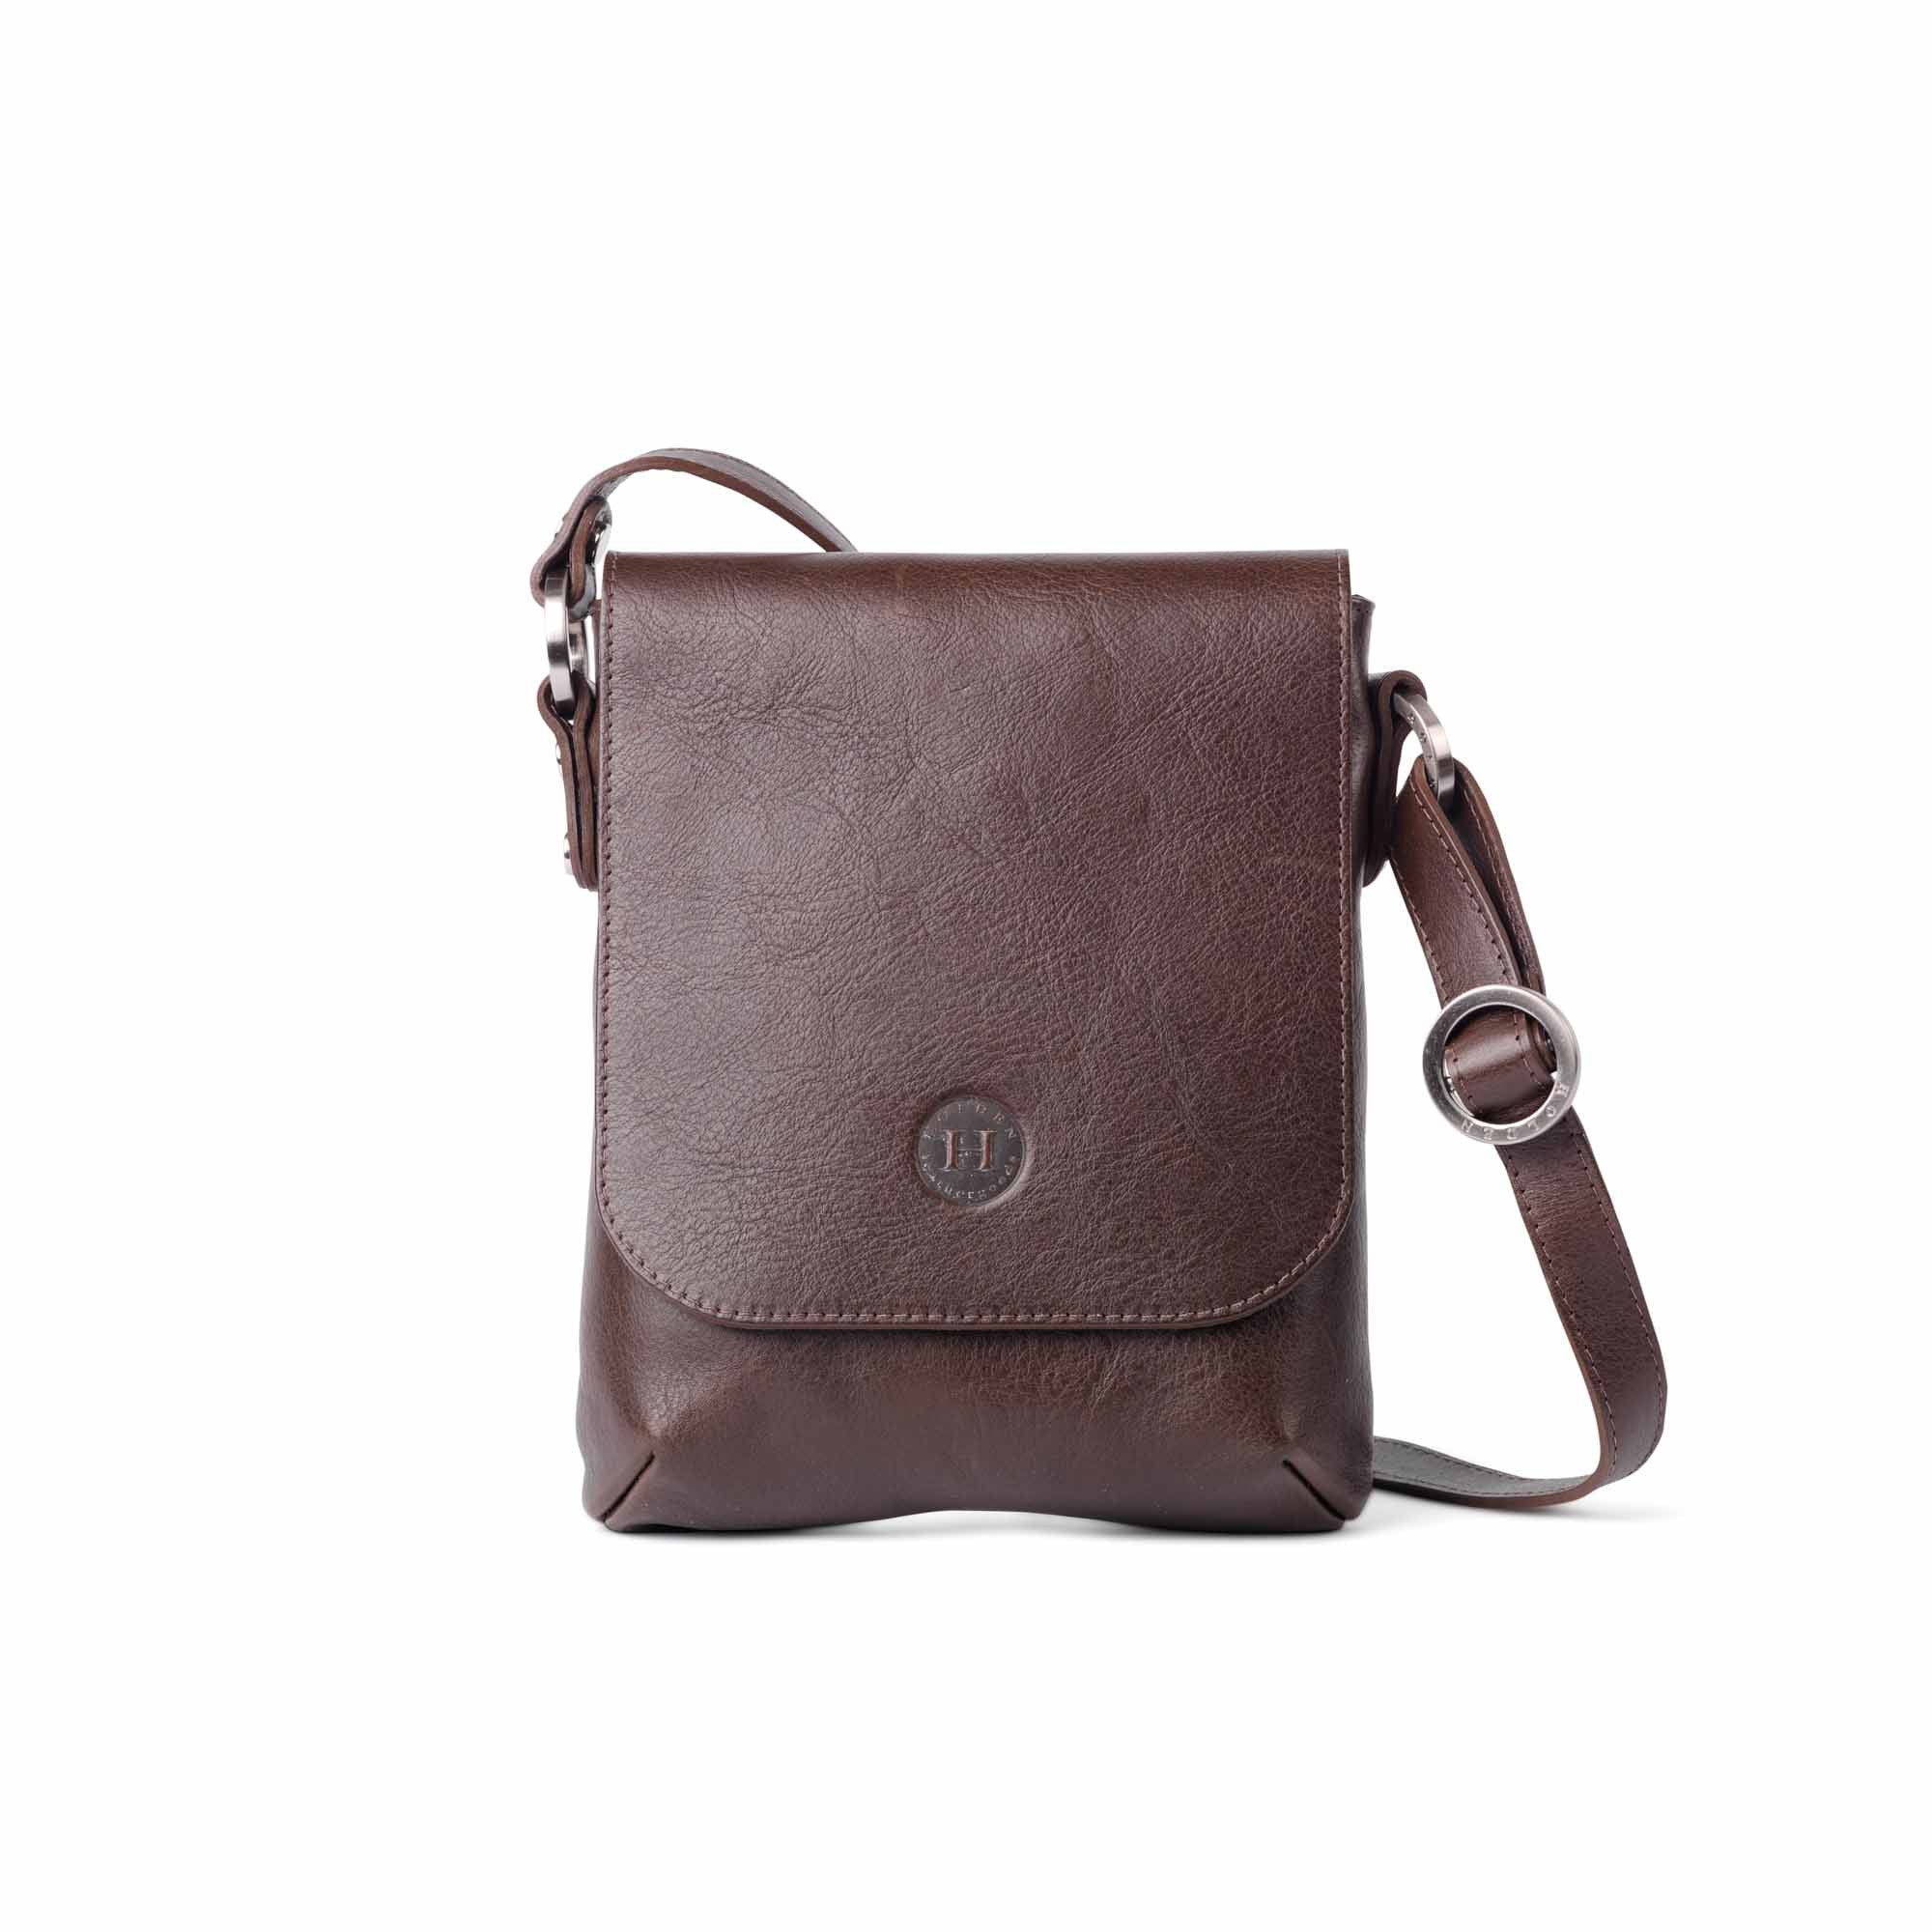 899287a8f3a Eithne Medium Leather Crossover Bag Brown - Holden Leathergoods, leather  bags handmade in Ireland